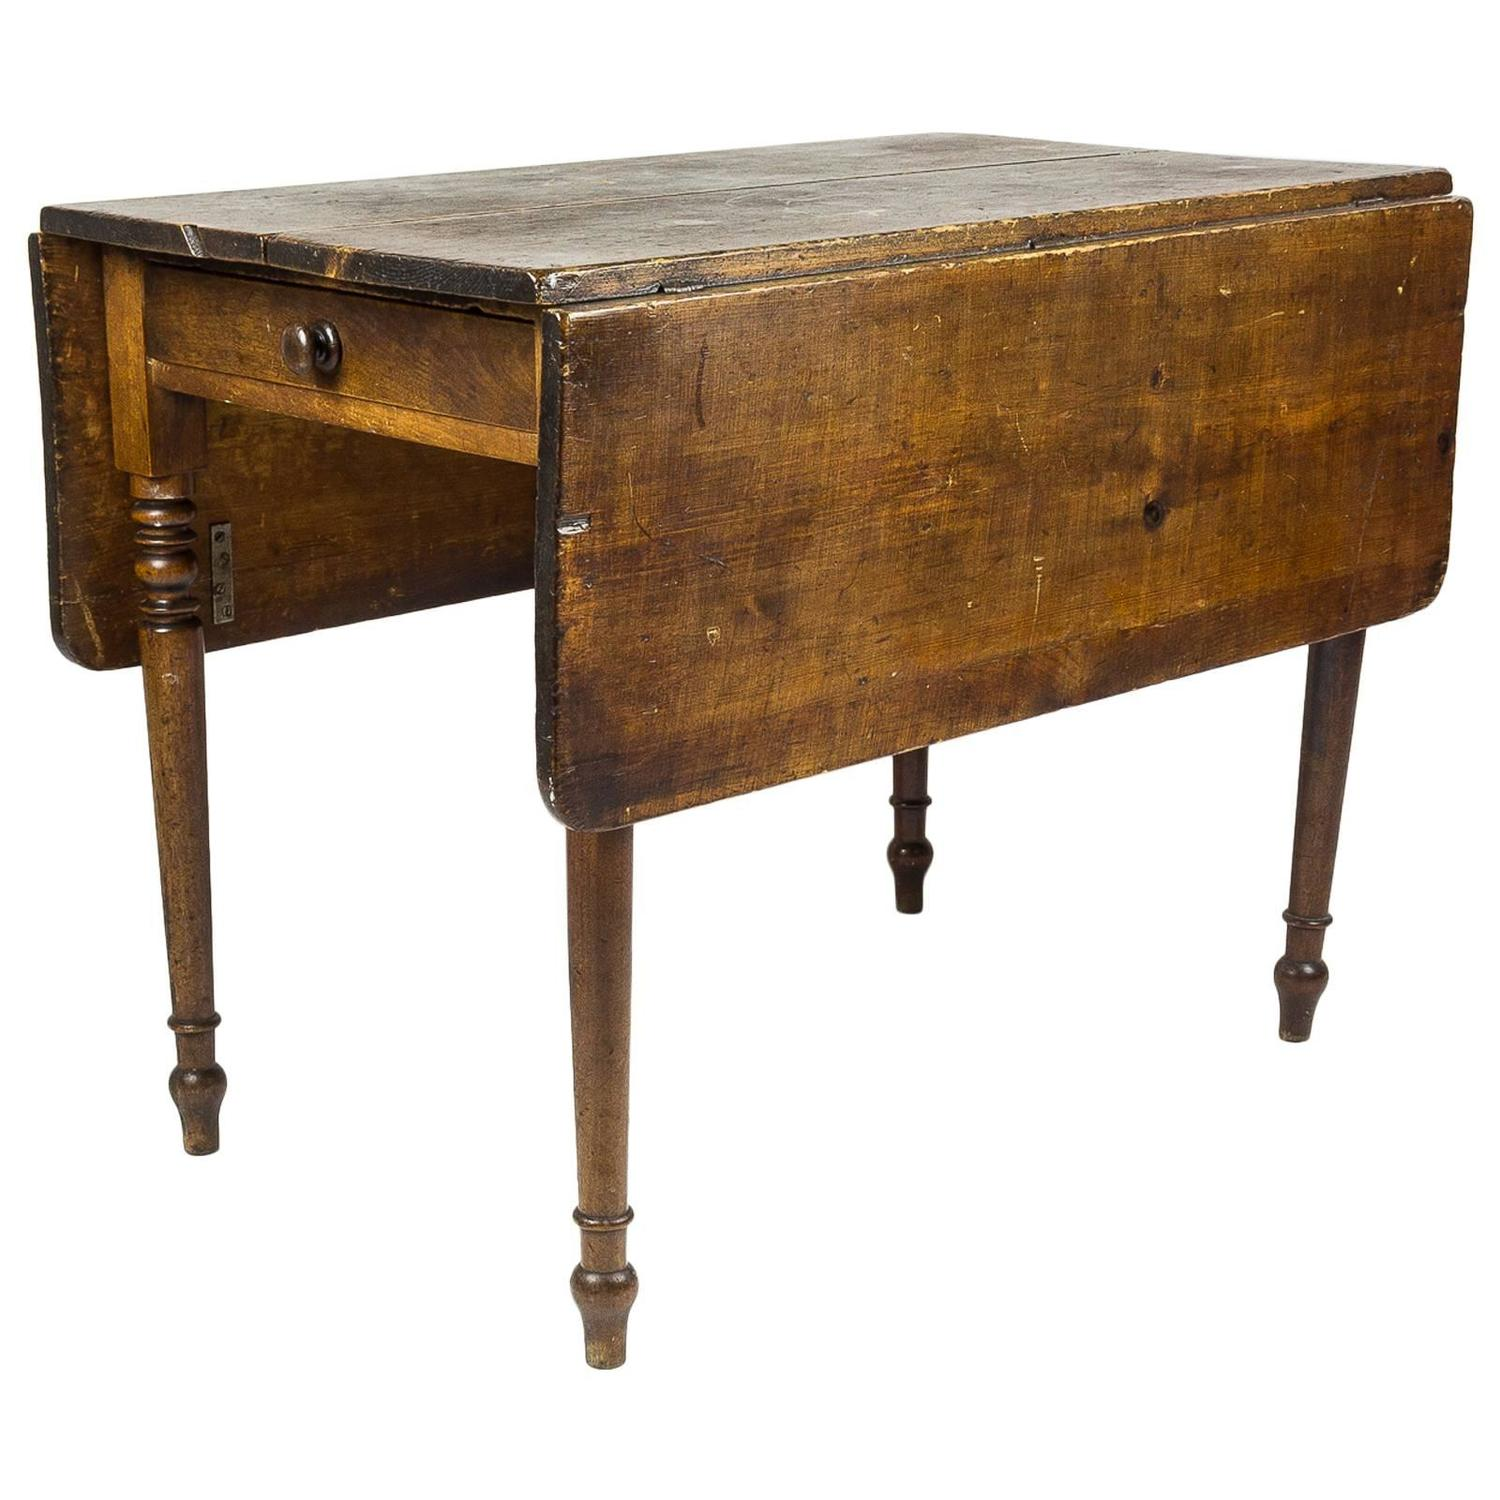 Edwardian Drop Leaf Kitchen Table at 1stdibs : 3774192z from www.1stdibs.com size 1500 x 1500 jpeg 161kB